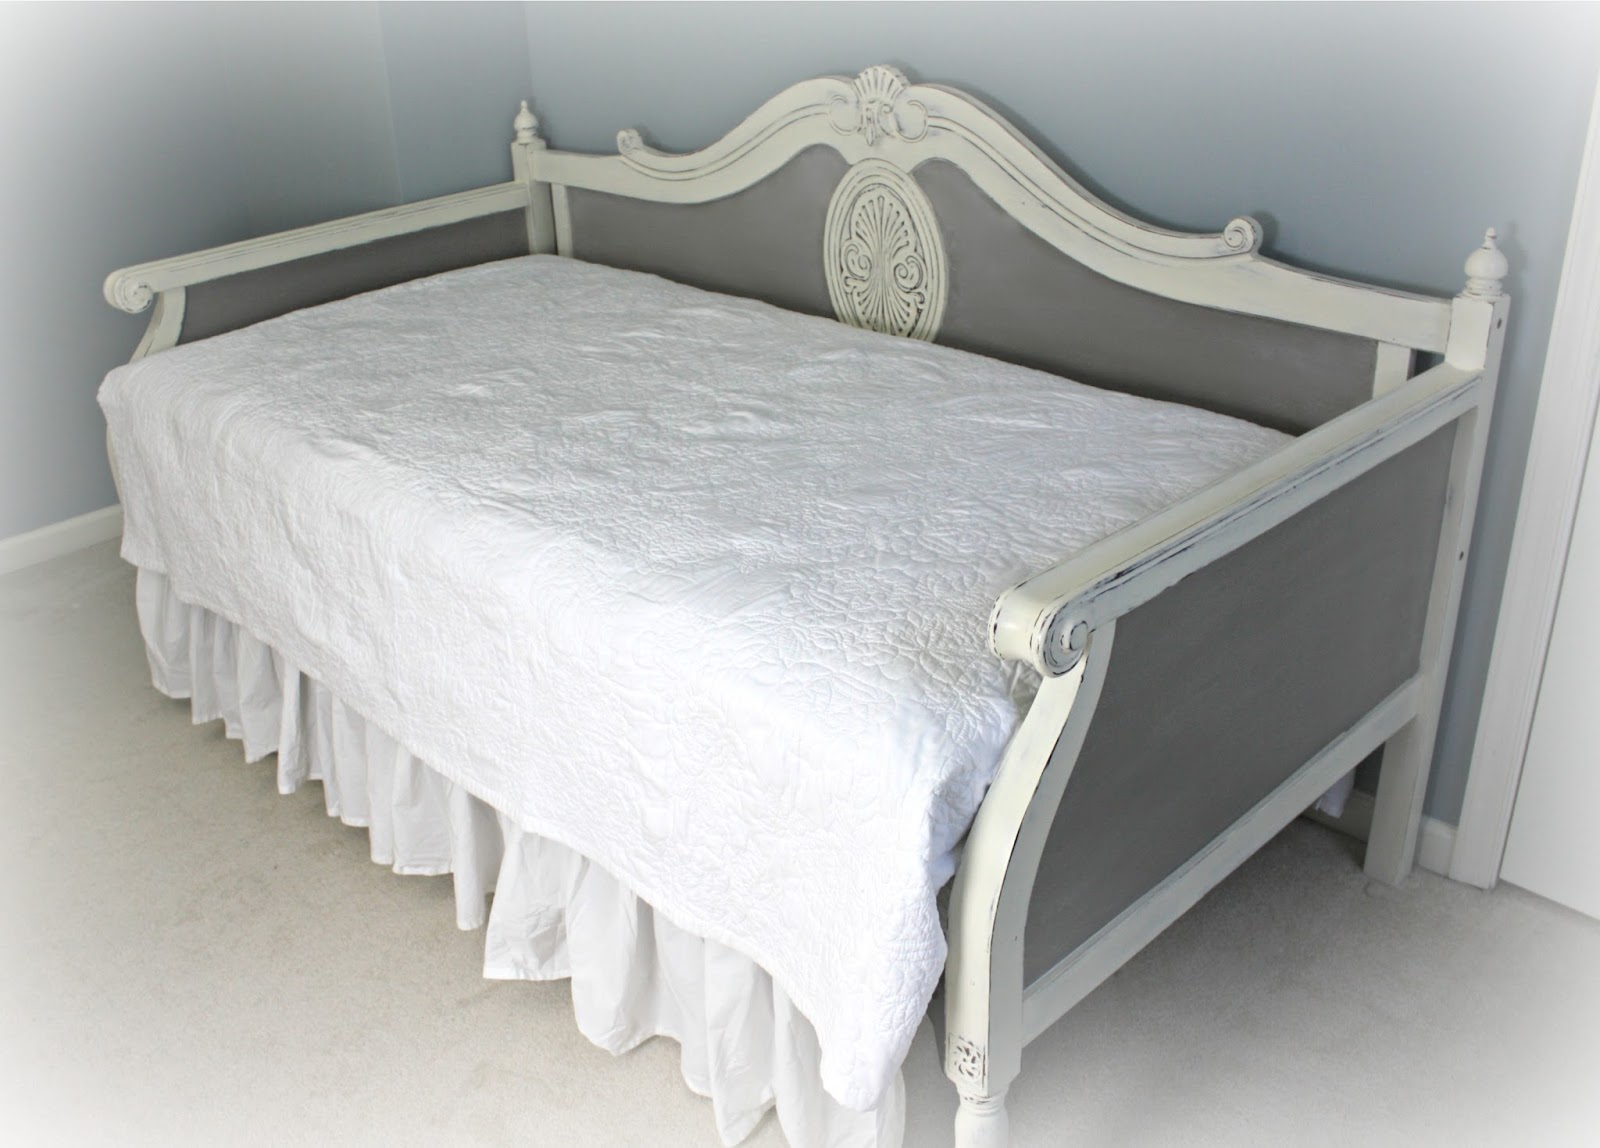 Daybed painted in French Linen and Old White